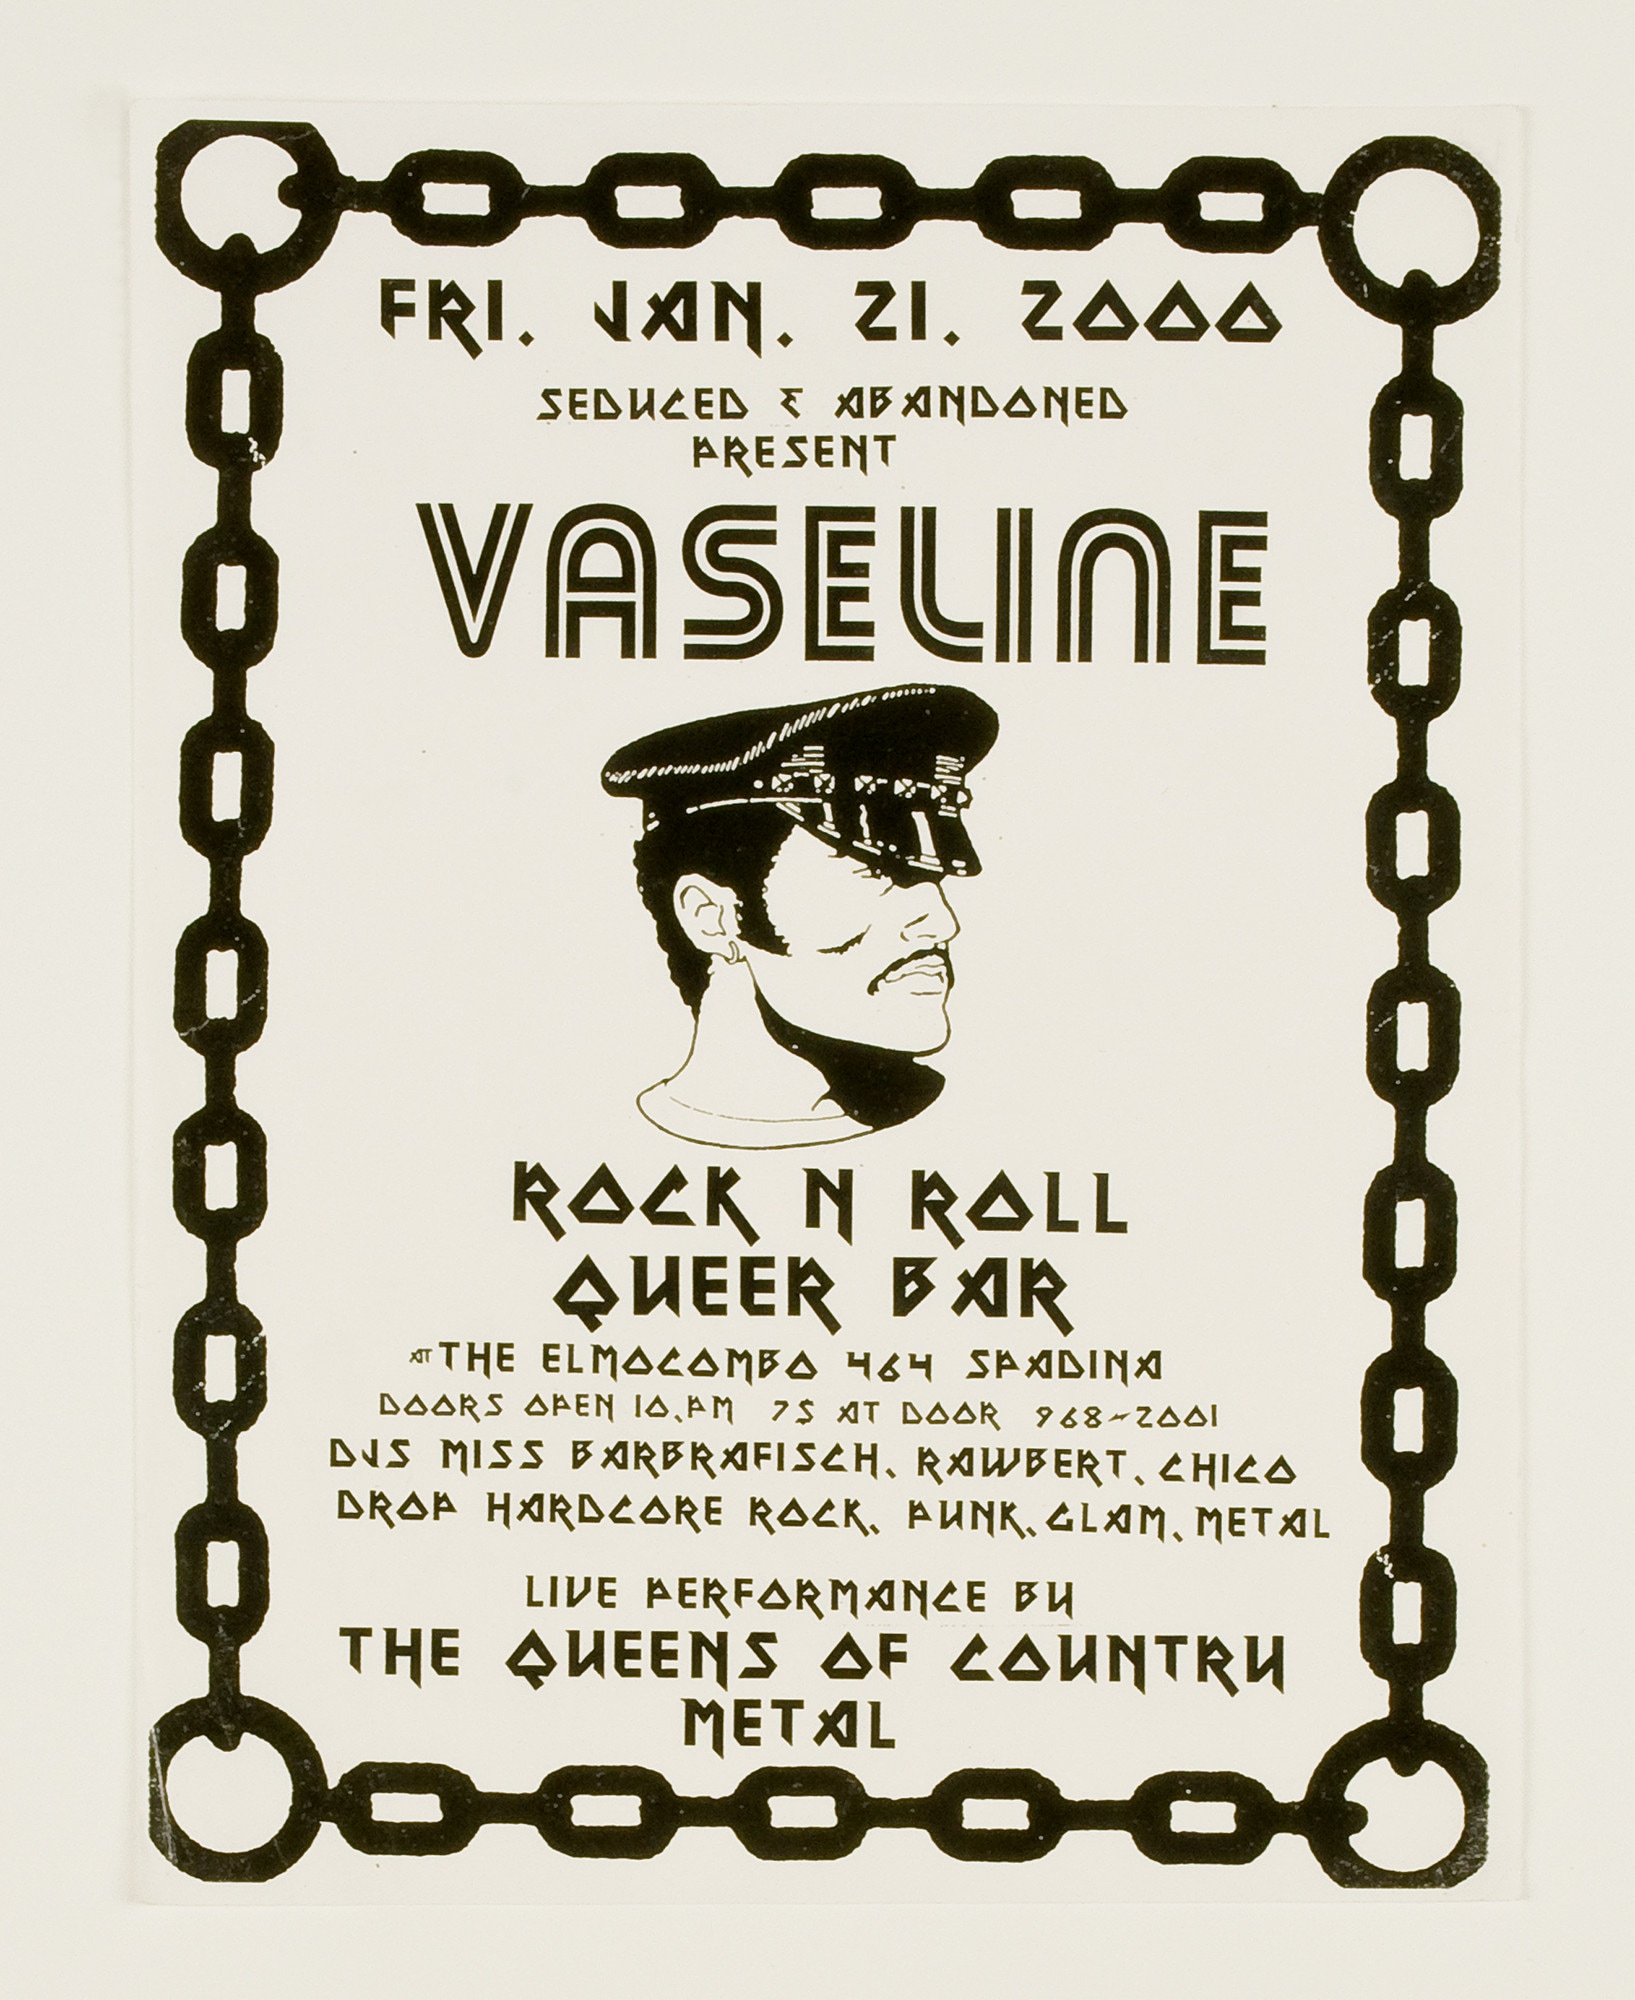 Black and white poster advertising queer rock dance party with cartoon of a man's head wearing a hat and a mustache in the middle surrounded by event information text and a chain link border.